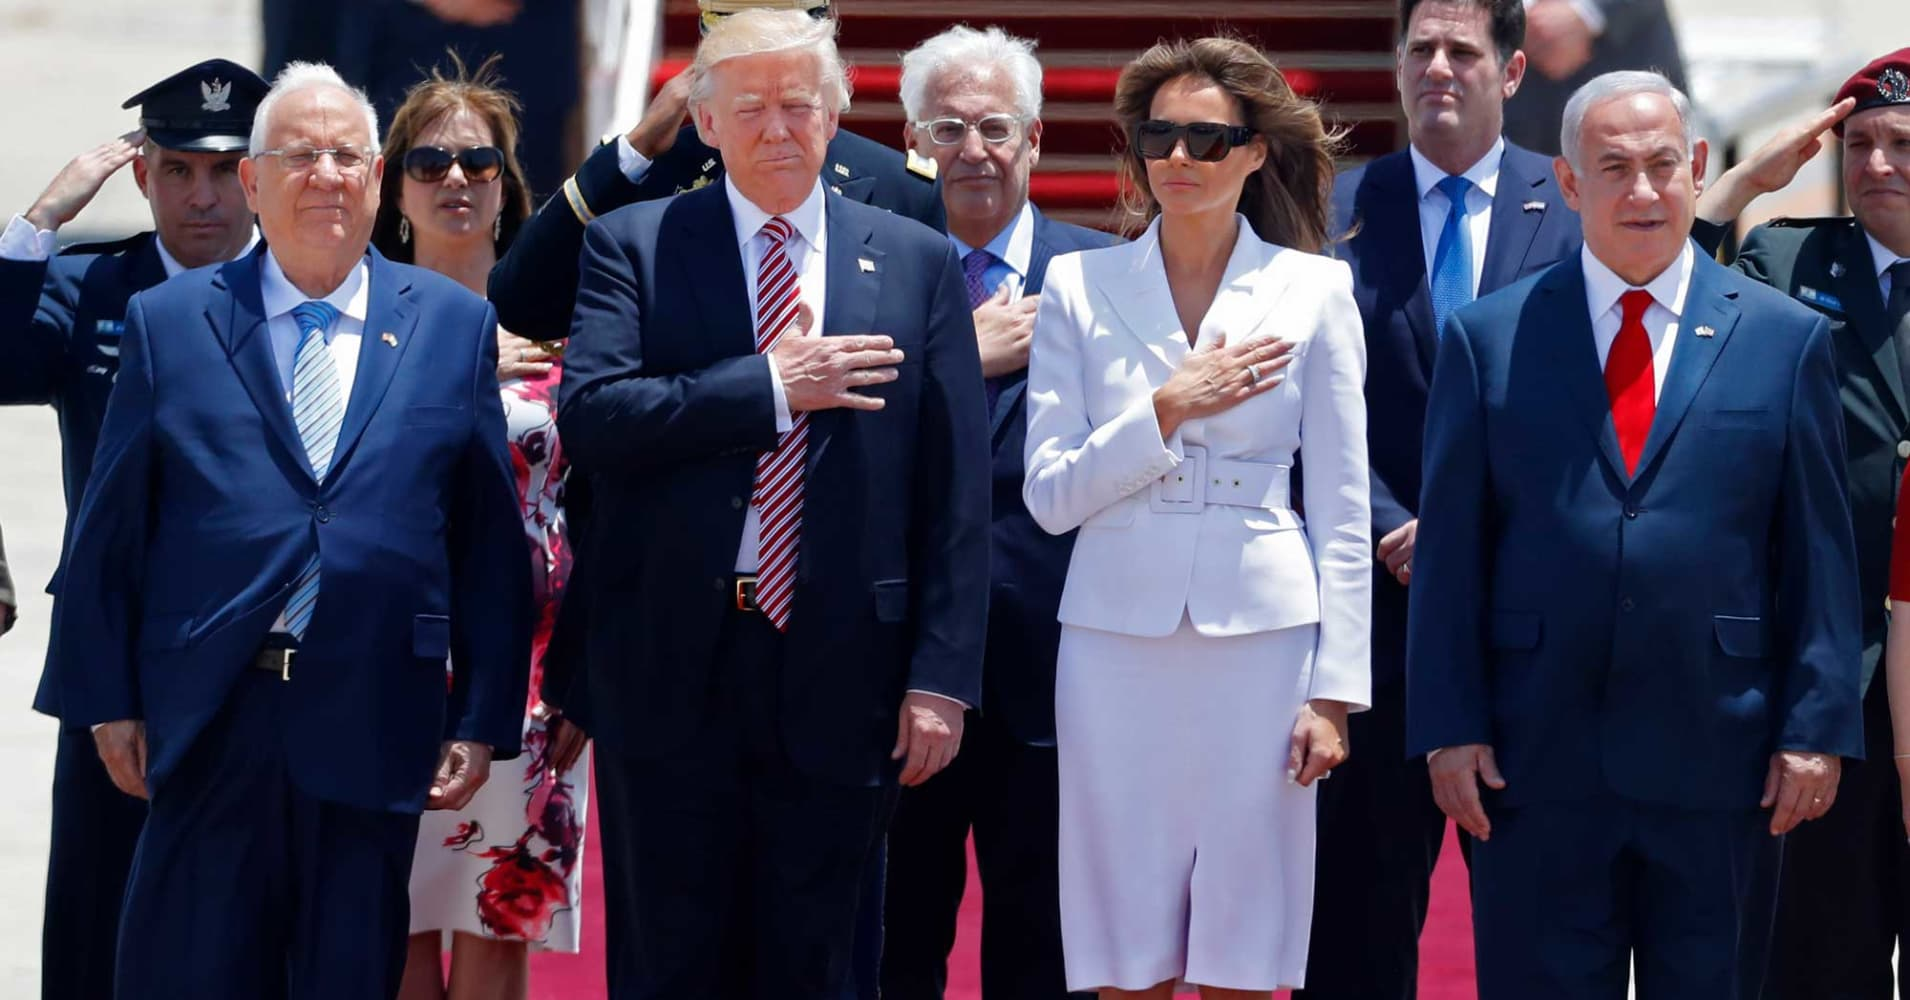 Donald Trump arrives in Israel, will push peace process